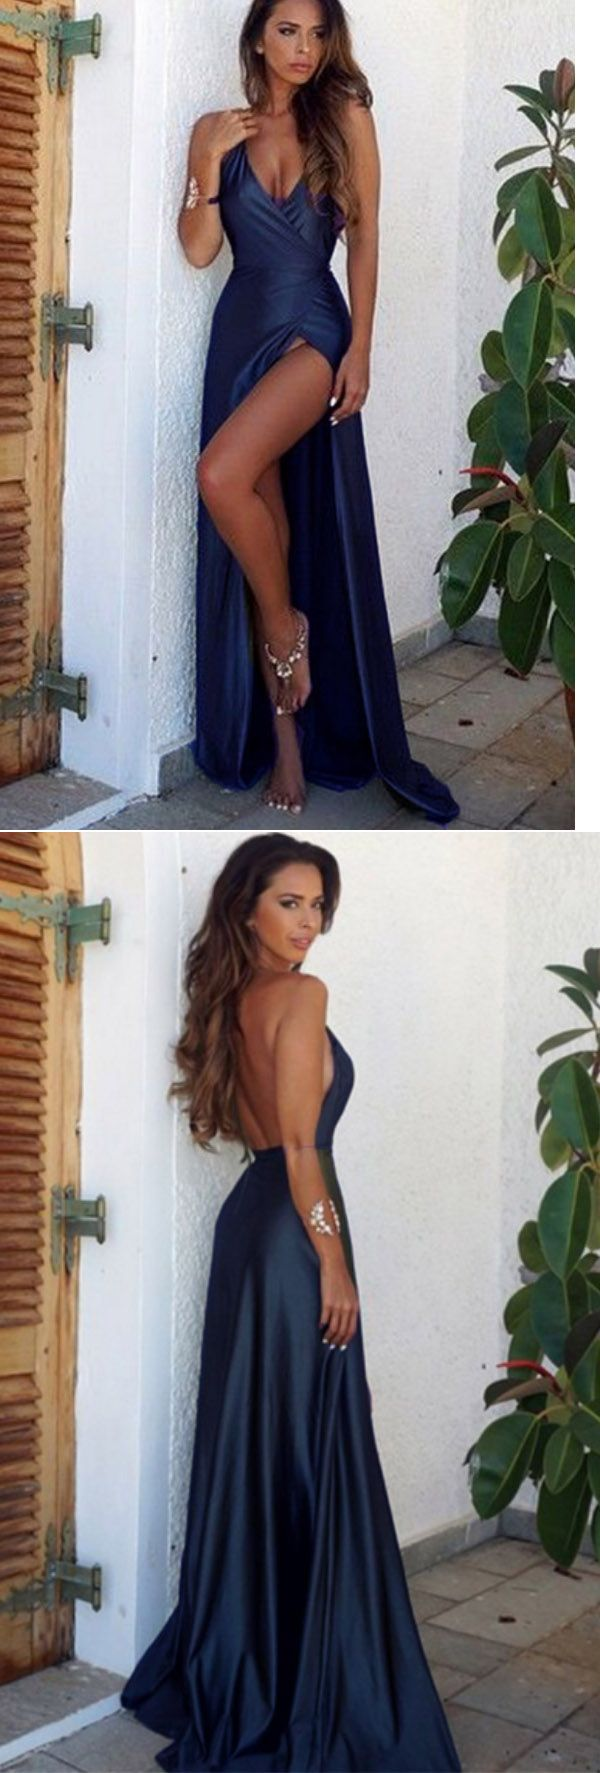 Olive greennavyburgundy sexy high slit long evening party dresses